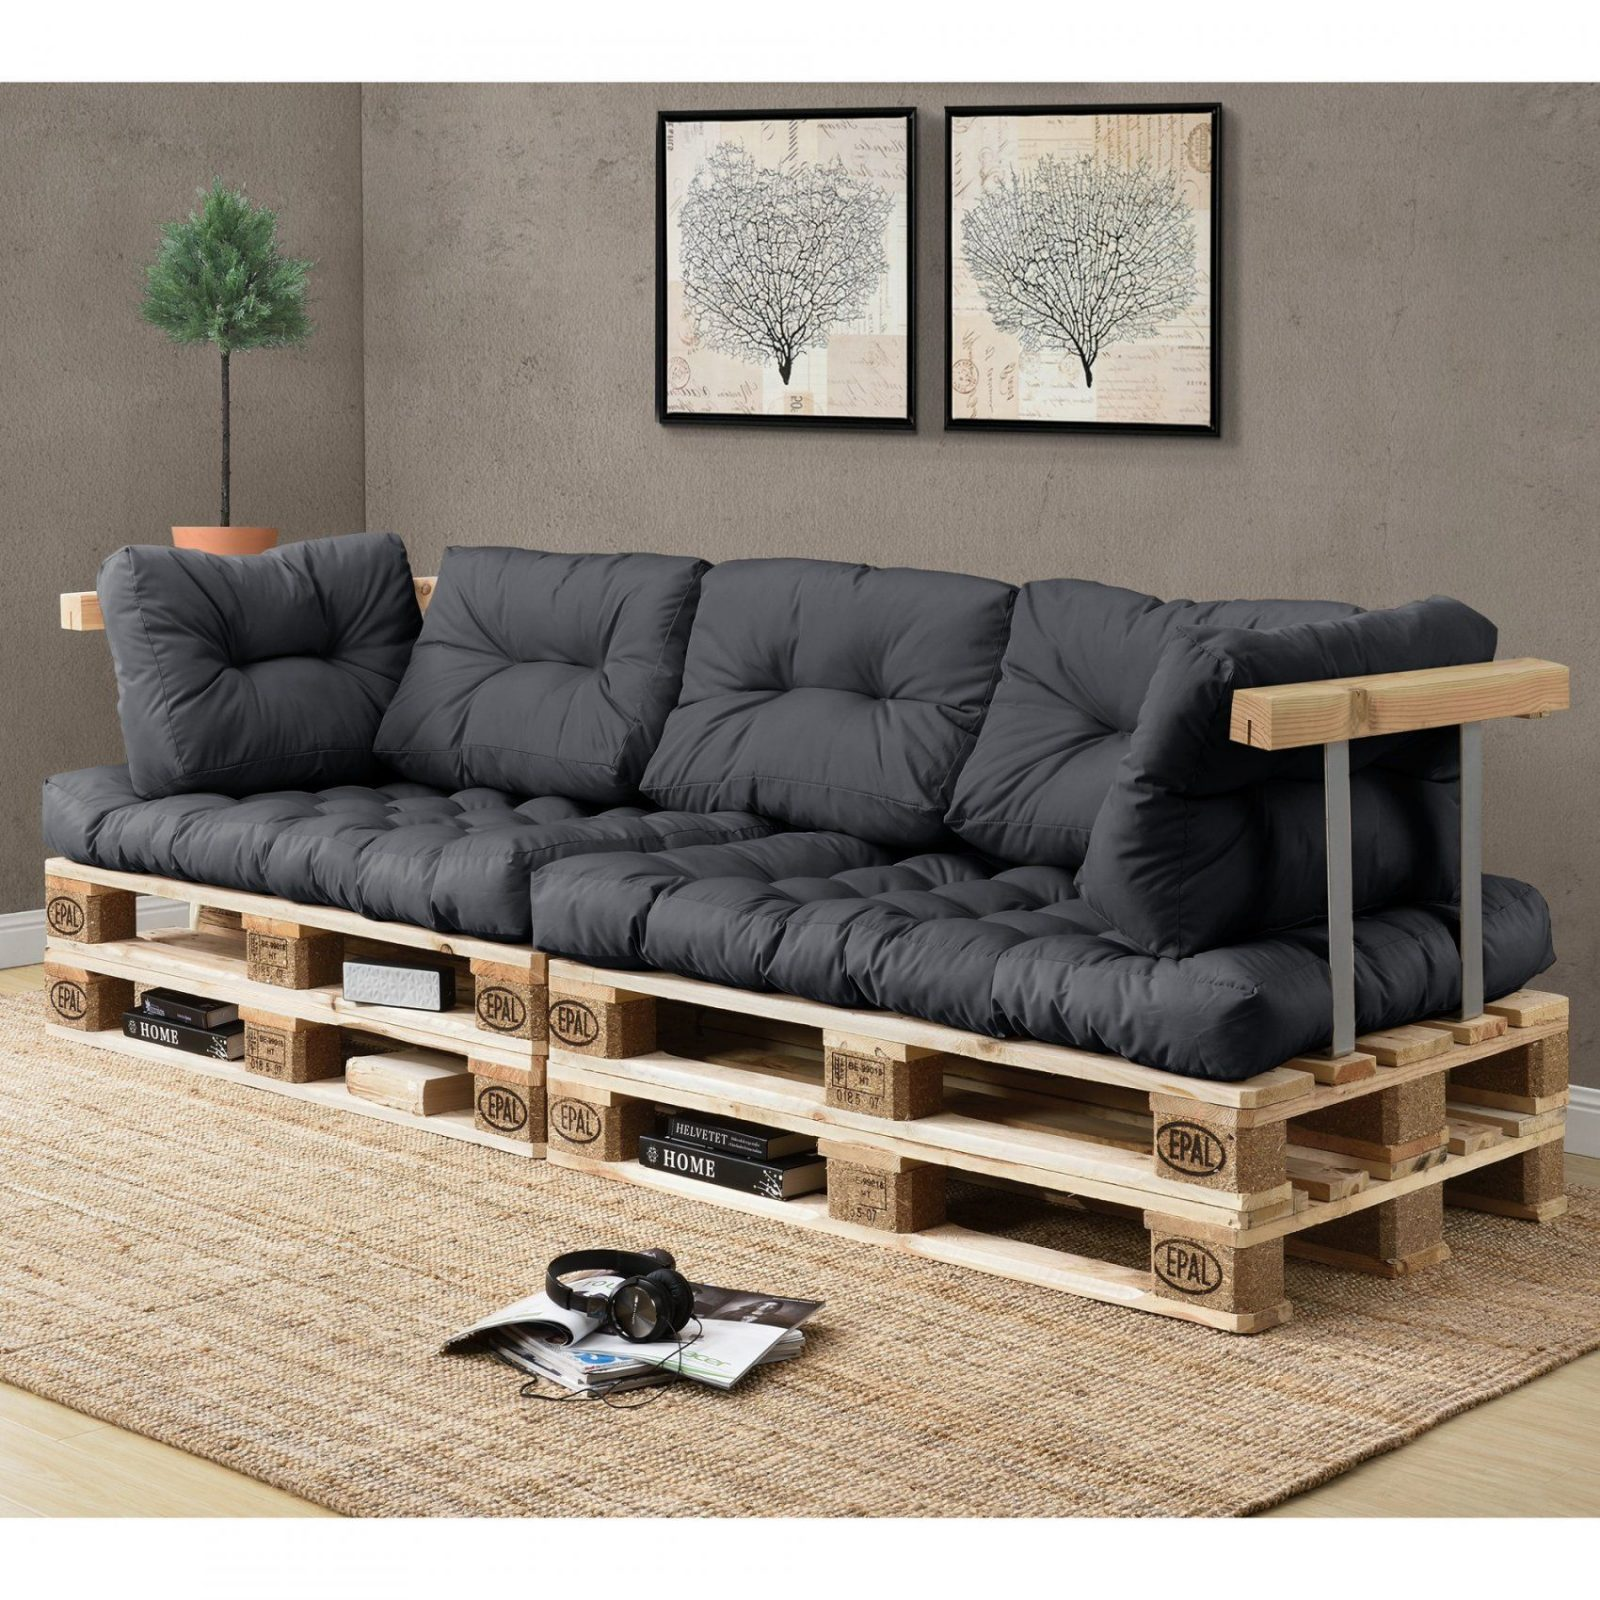 couch selbst bauen cheap couch selbst bauen polster selbera sofa von couch selber bauen. Black Bedroom Furniture Sets. Home Design Ideas